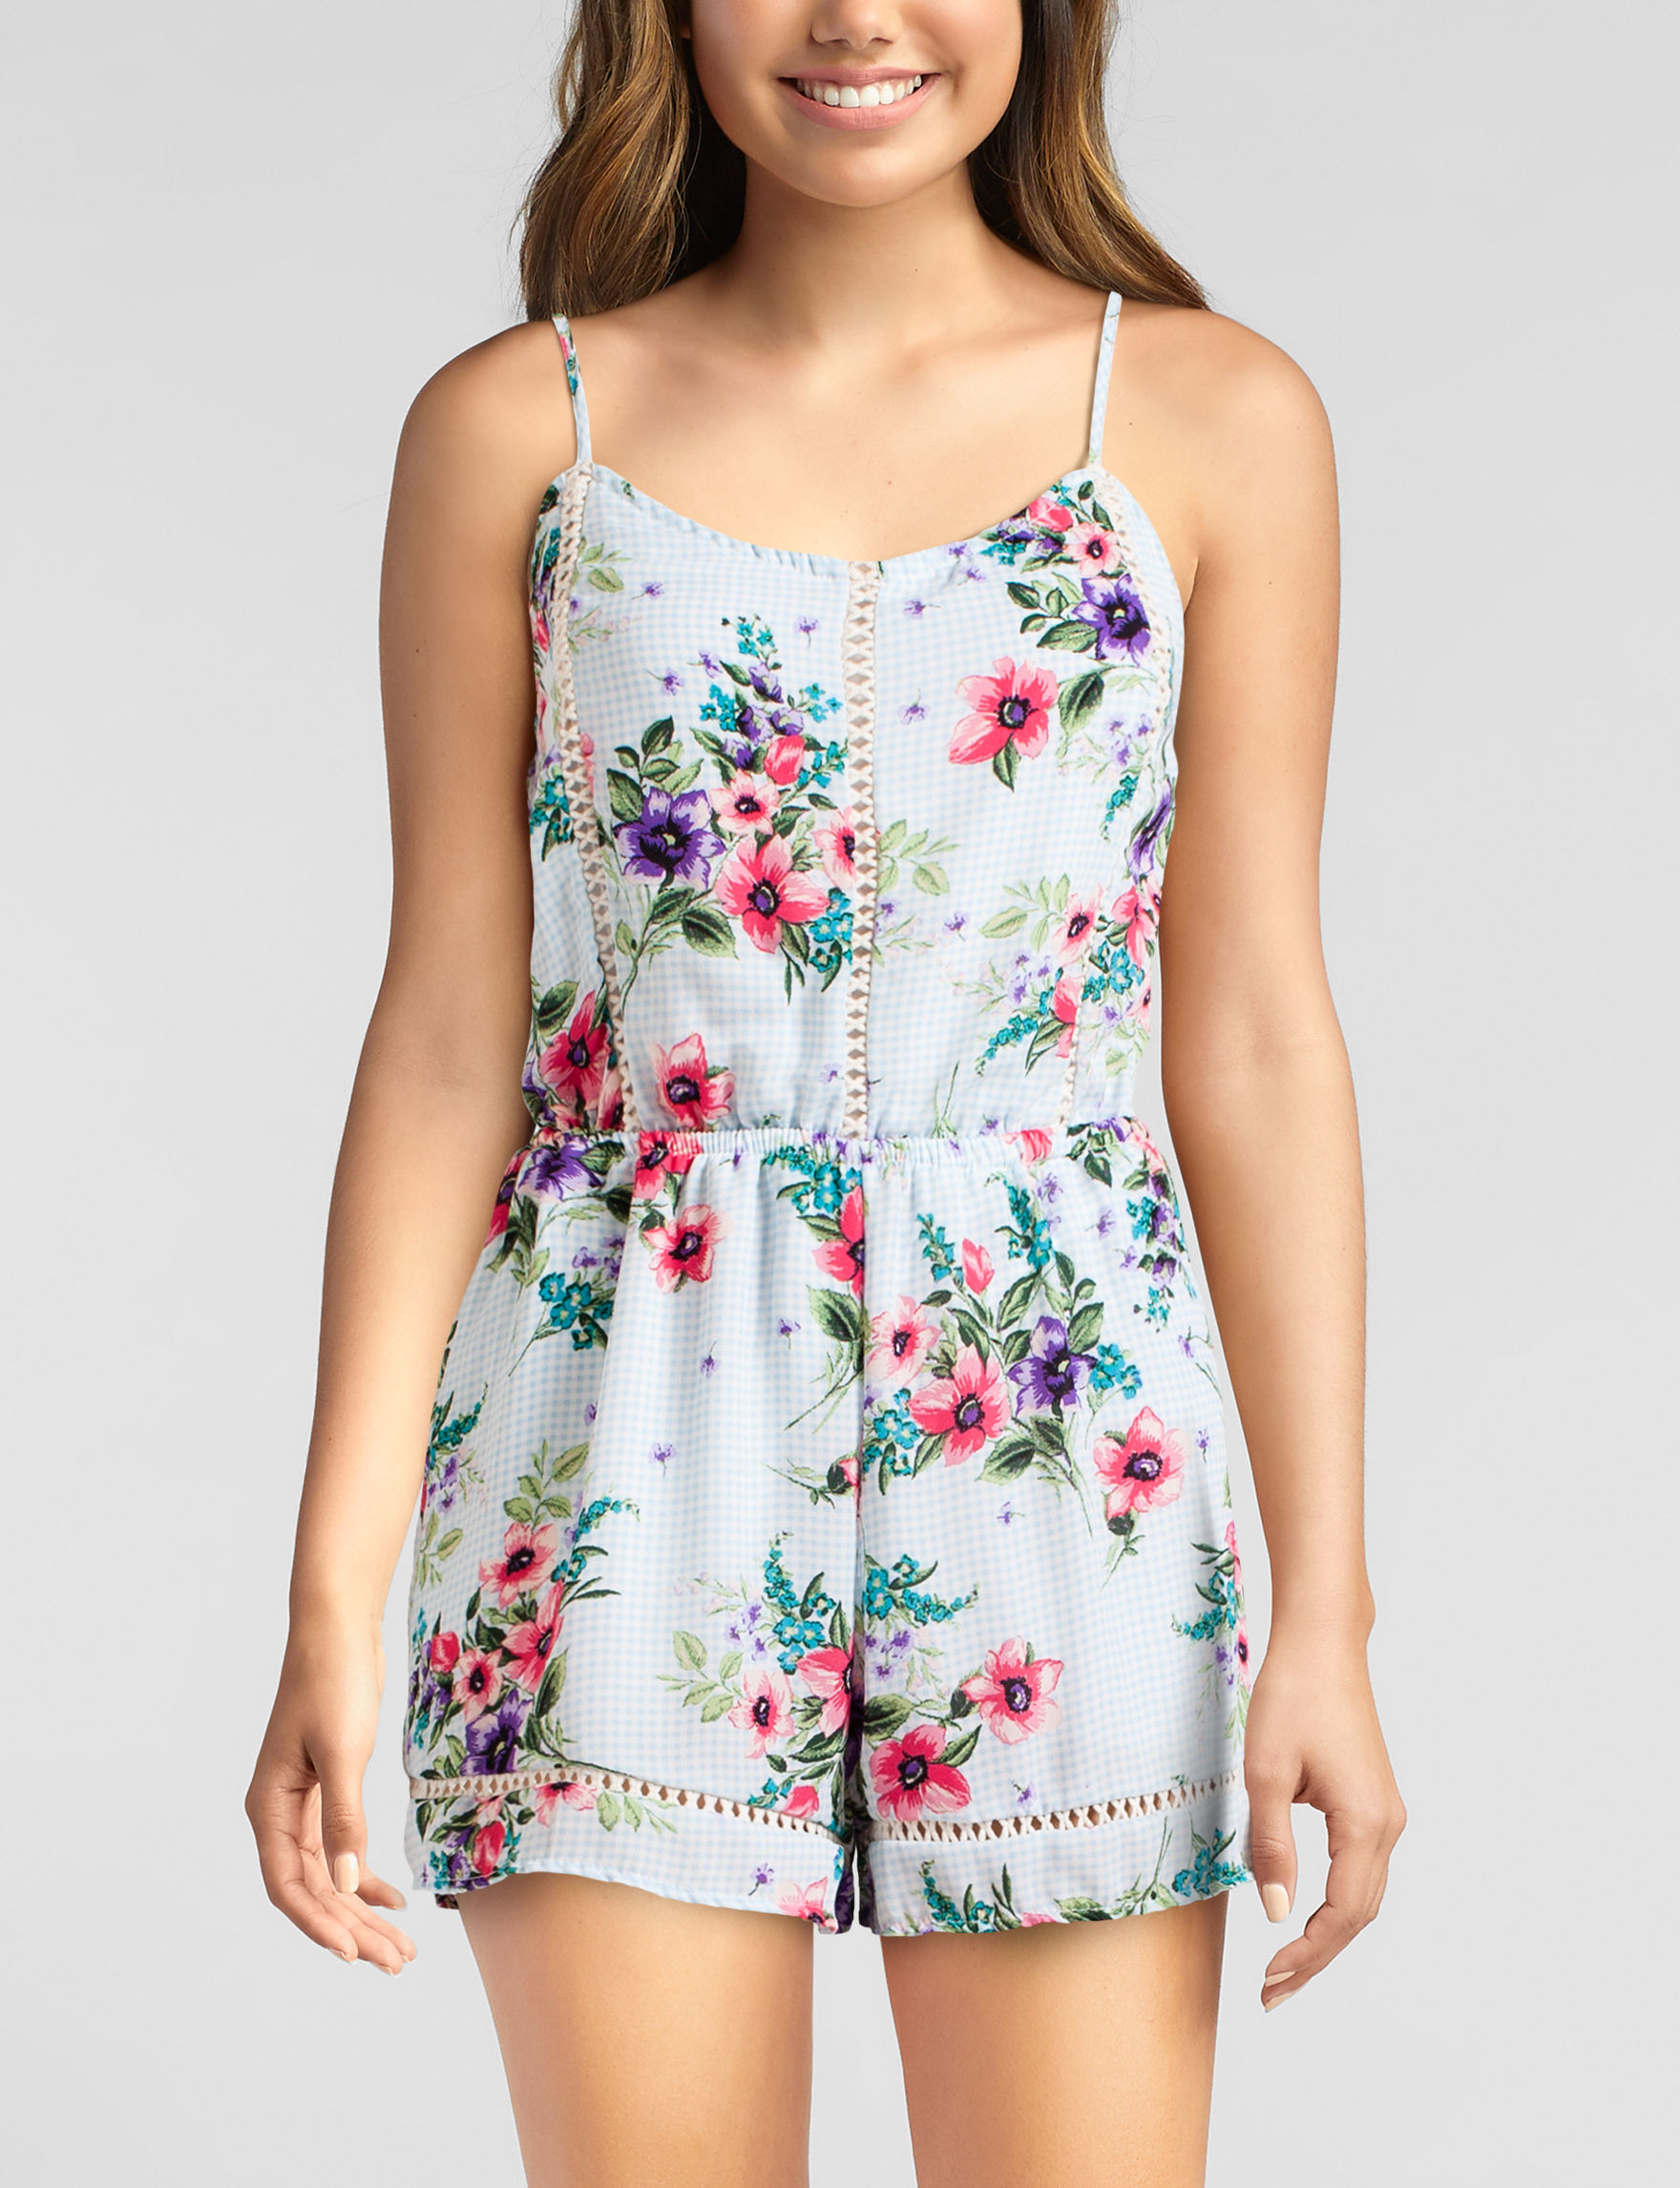 Liberty Love Blue Floral